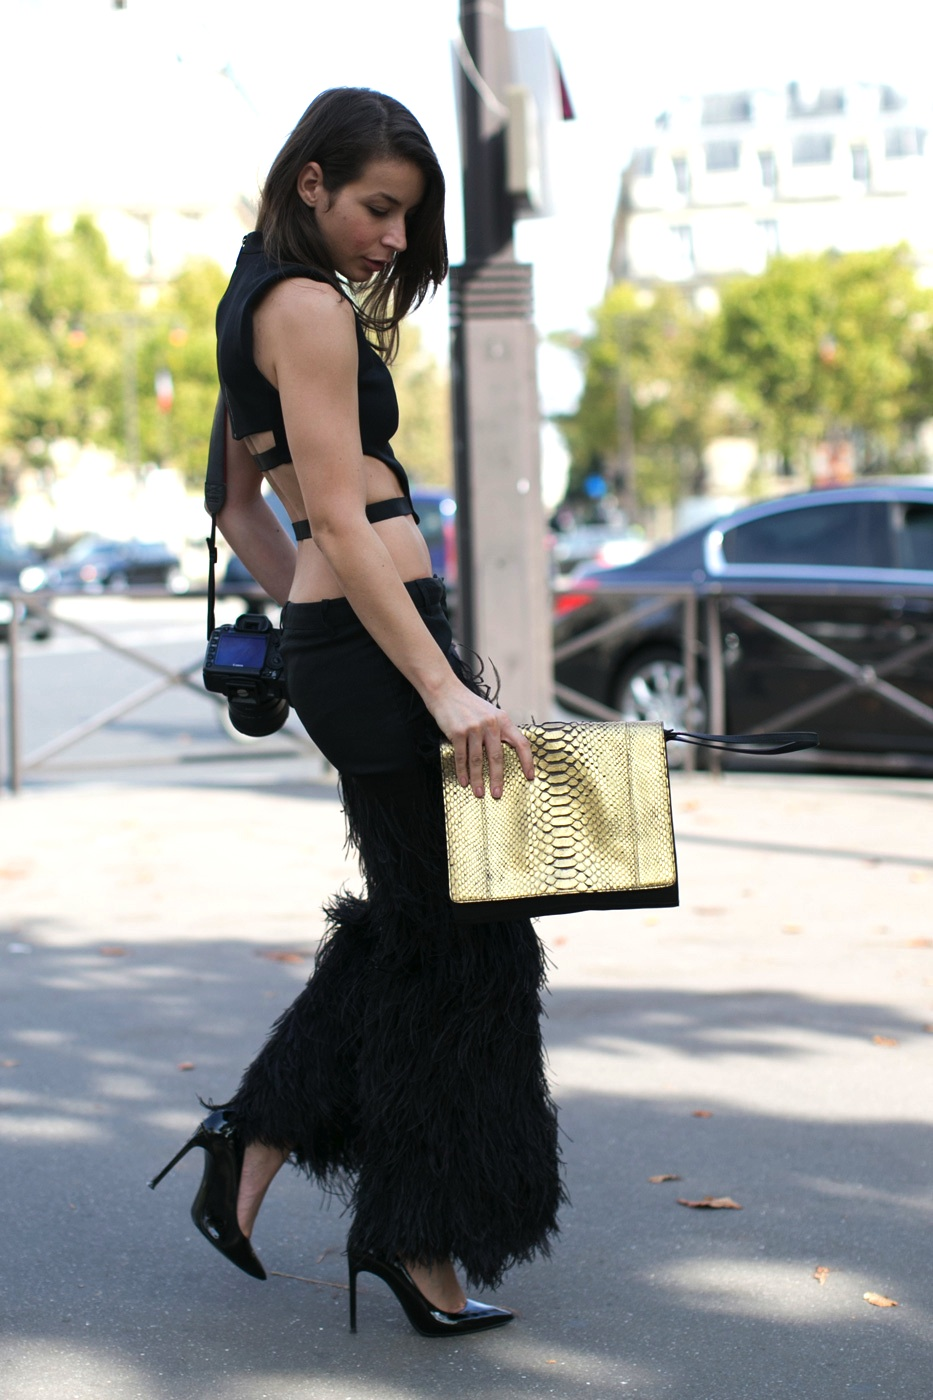 dwts 15 Signs Youll Never End Up on a Street Style Blog